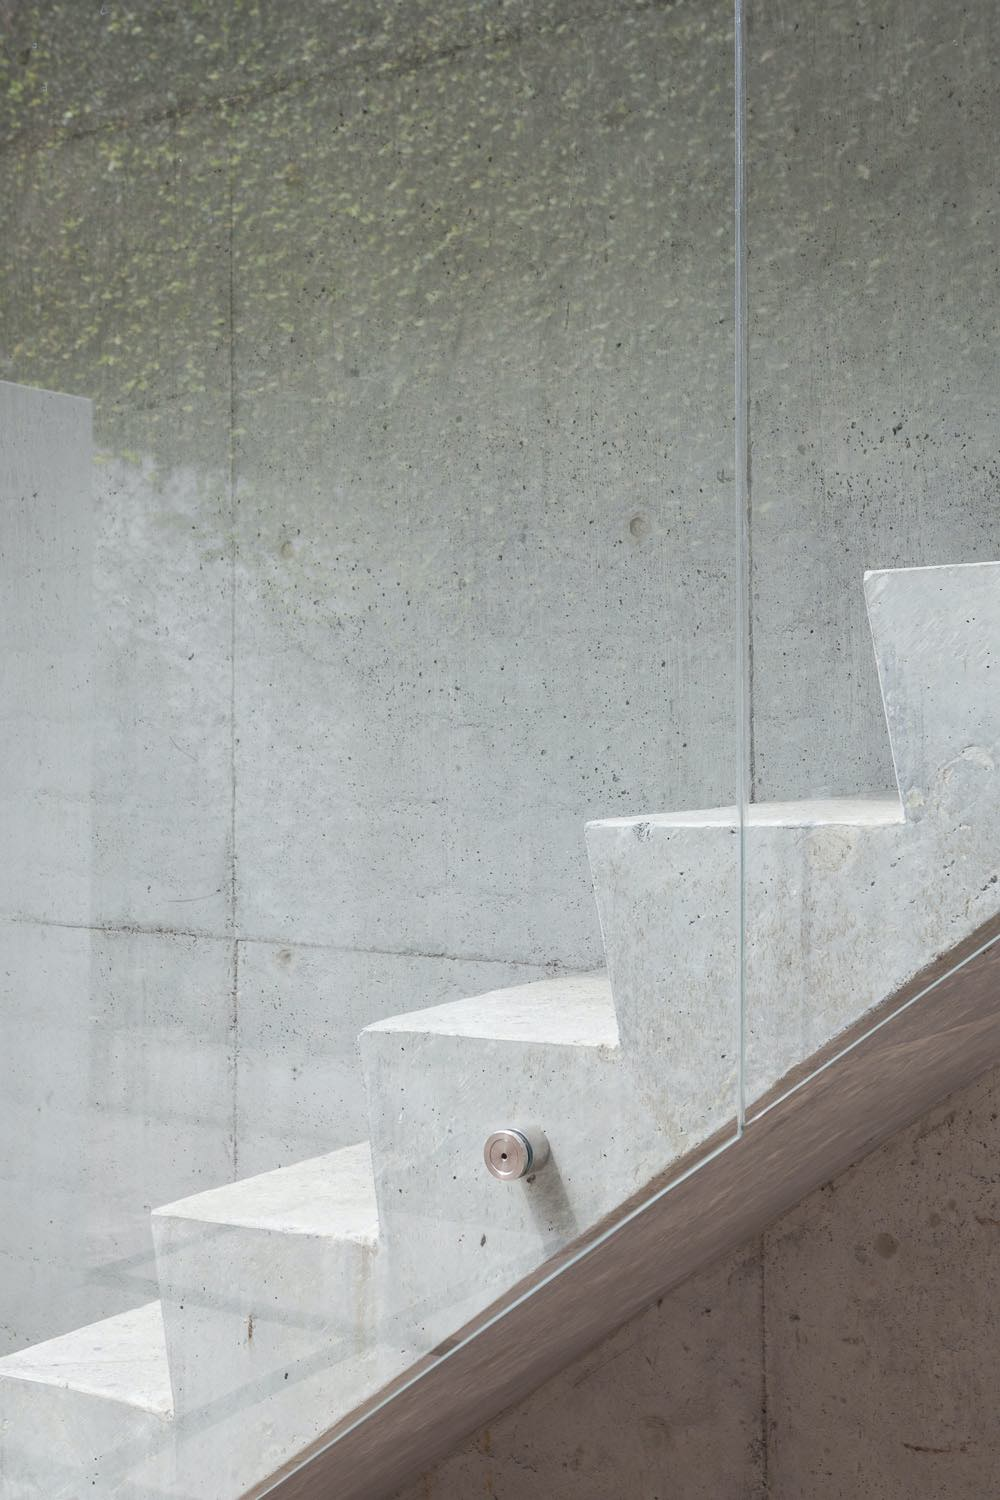 the details of the concrete staircase